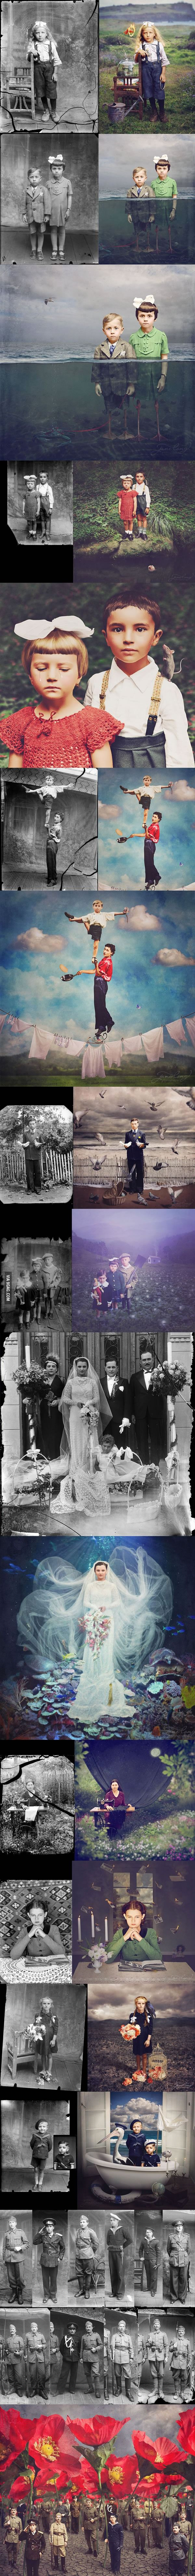 Artist colorizes old photos with surreal twists (by Jane Long) - 9GAG